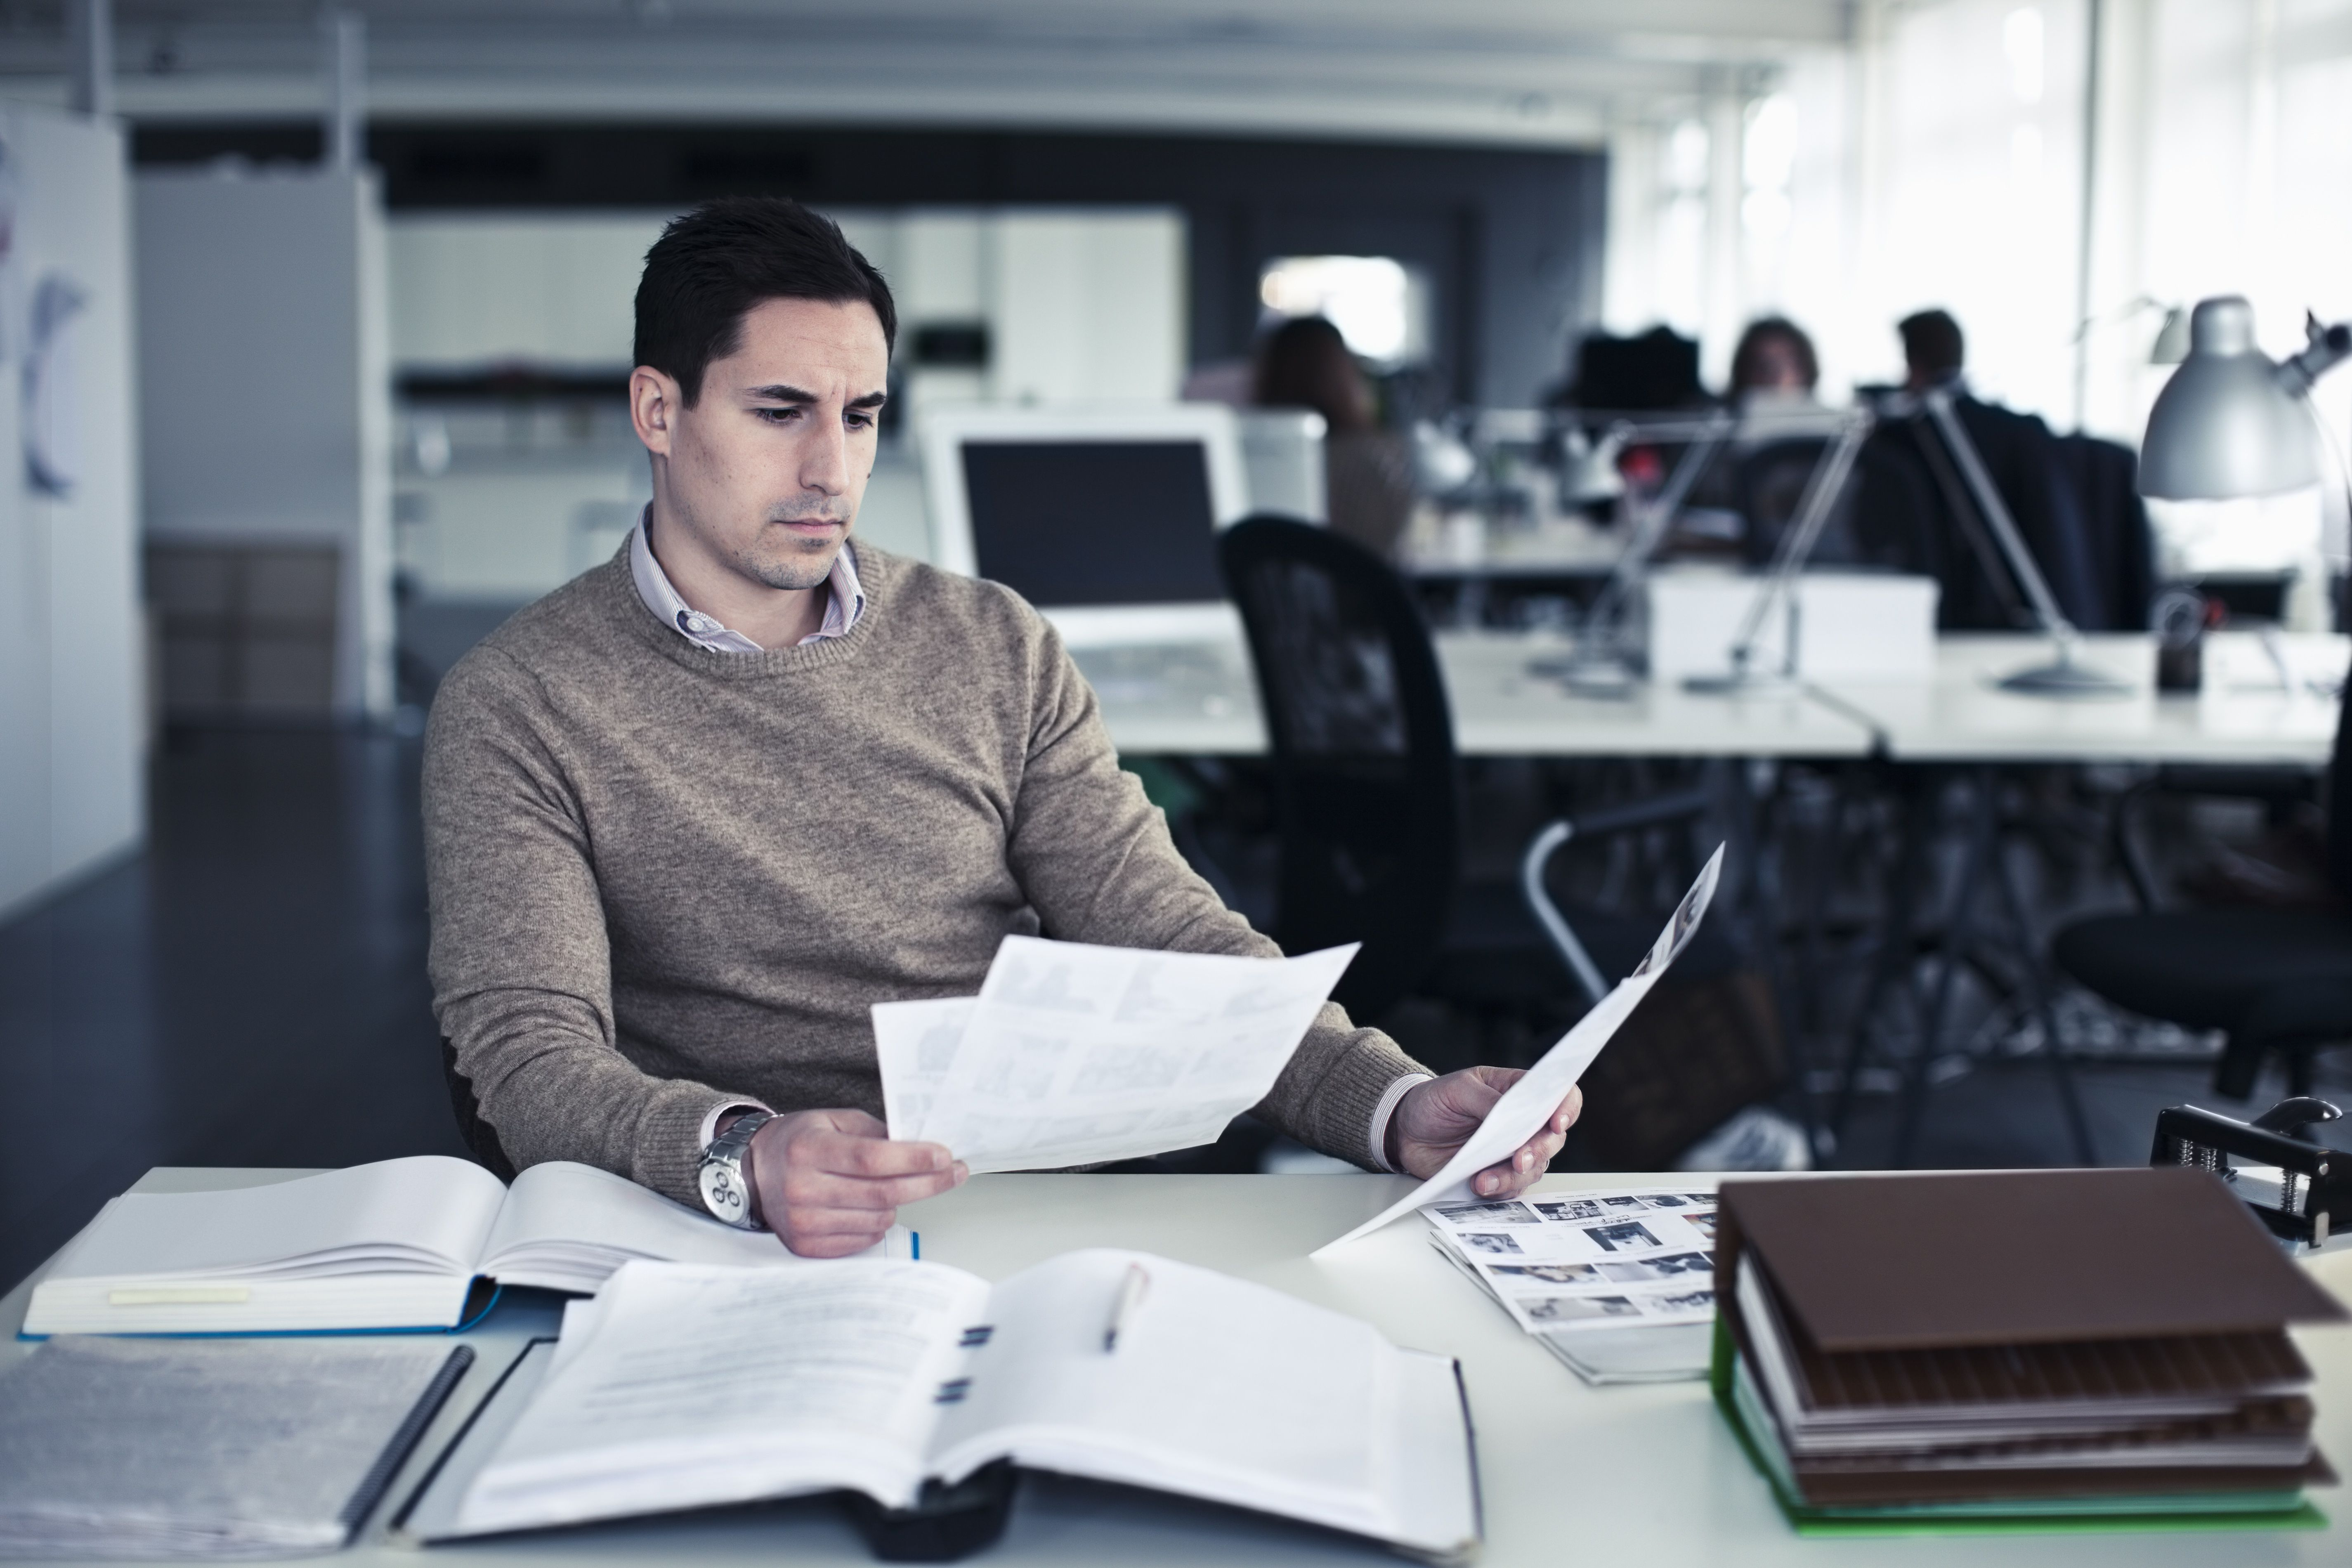 Businessman working at desk looking for red flags on an applicant's resume.